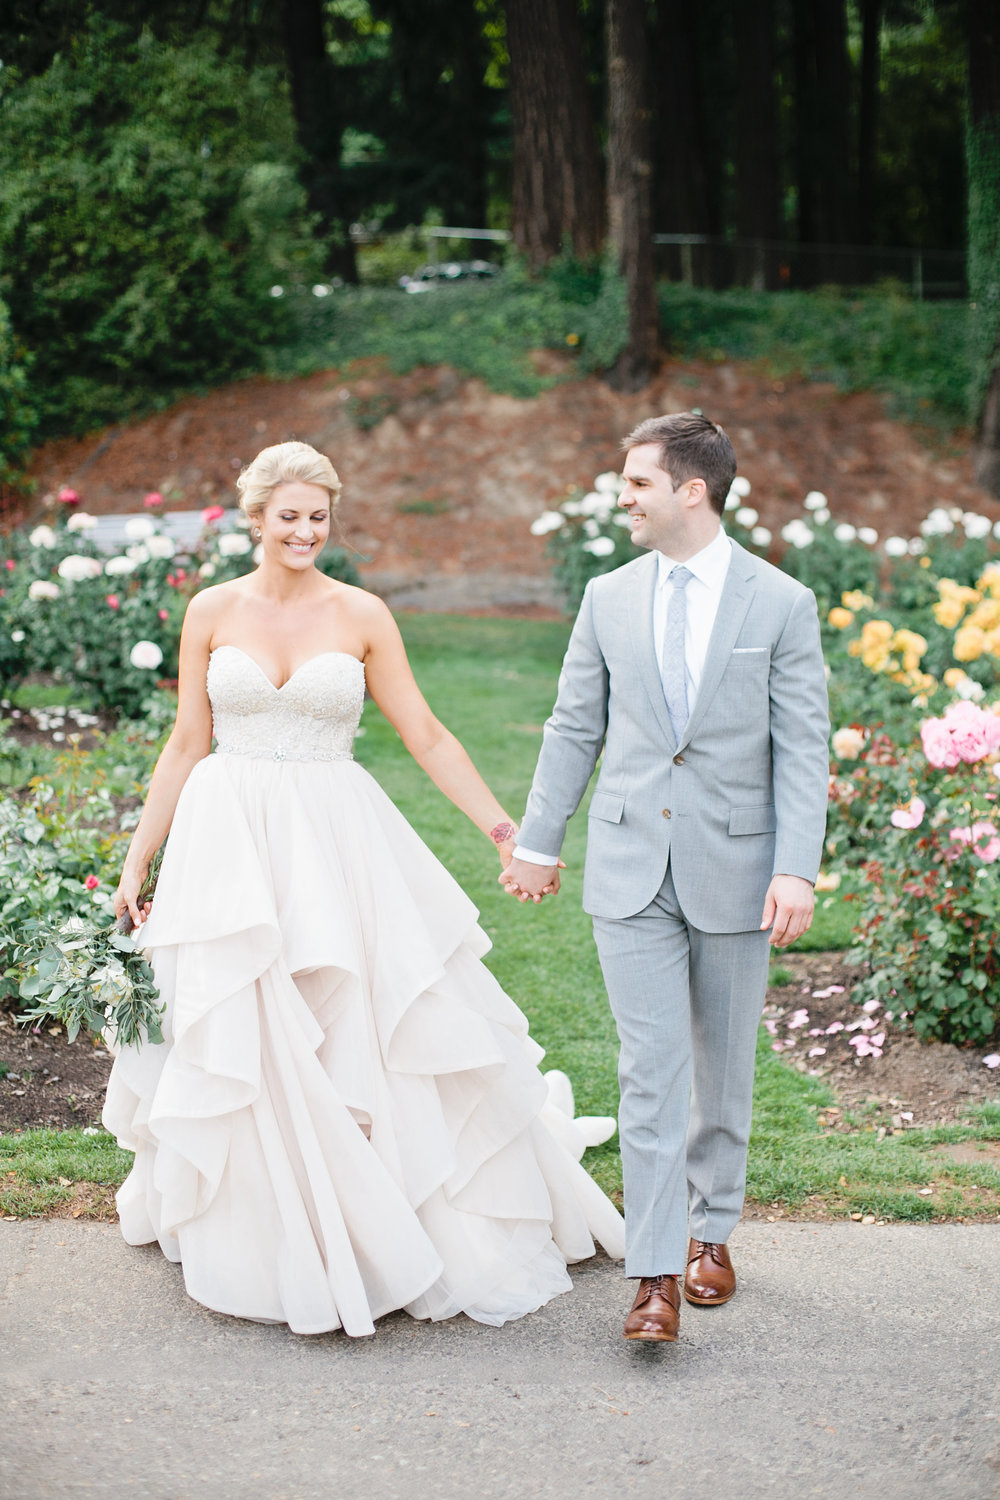 Meredith + Scott - Styling by Ashley Spence